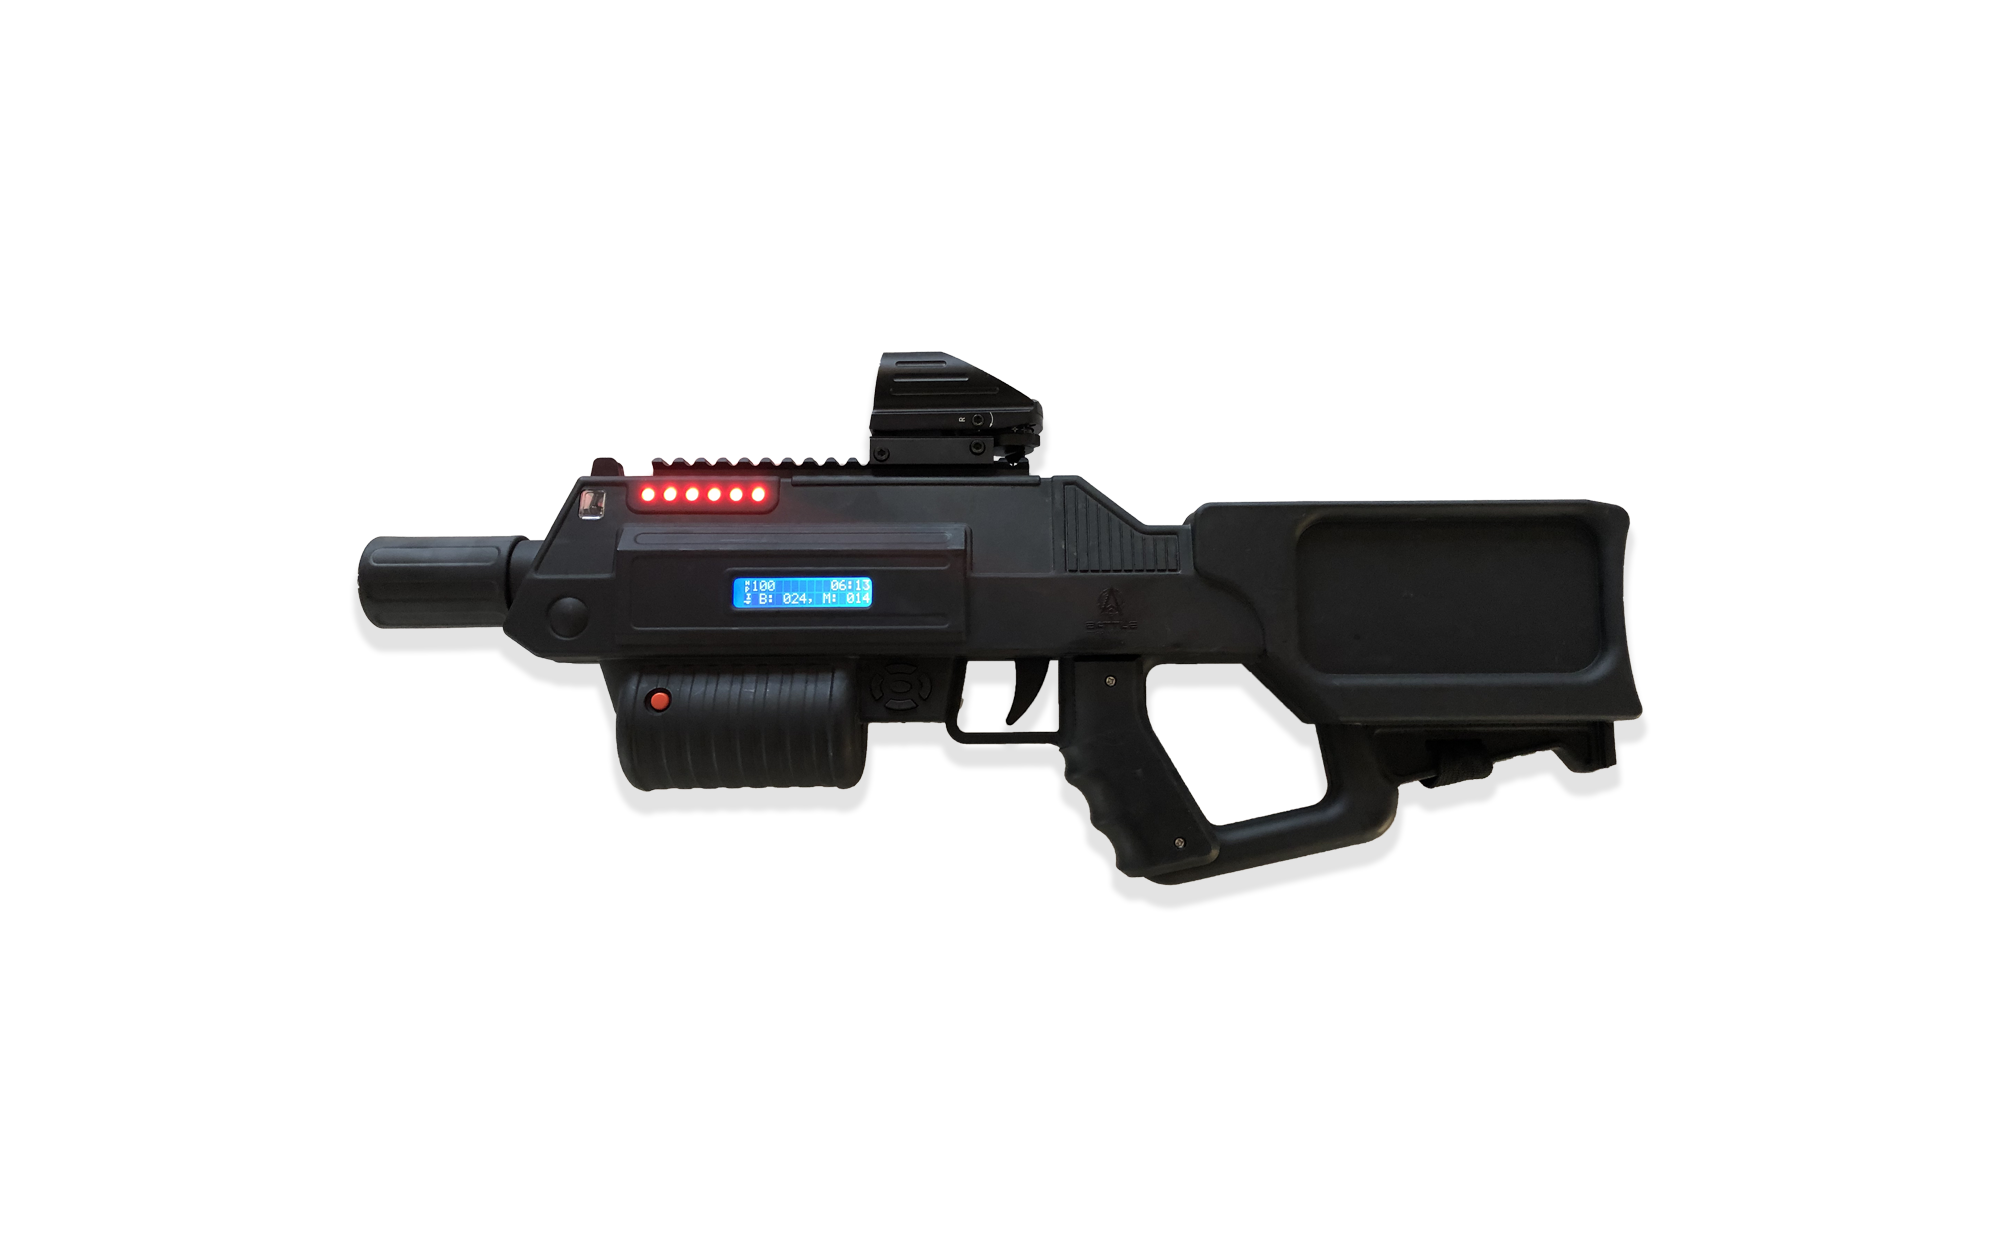 Live action gaming - laser tag Equipment